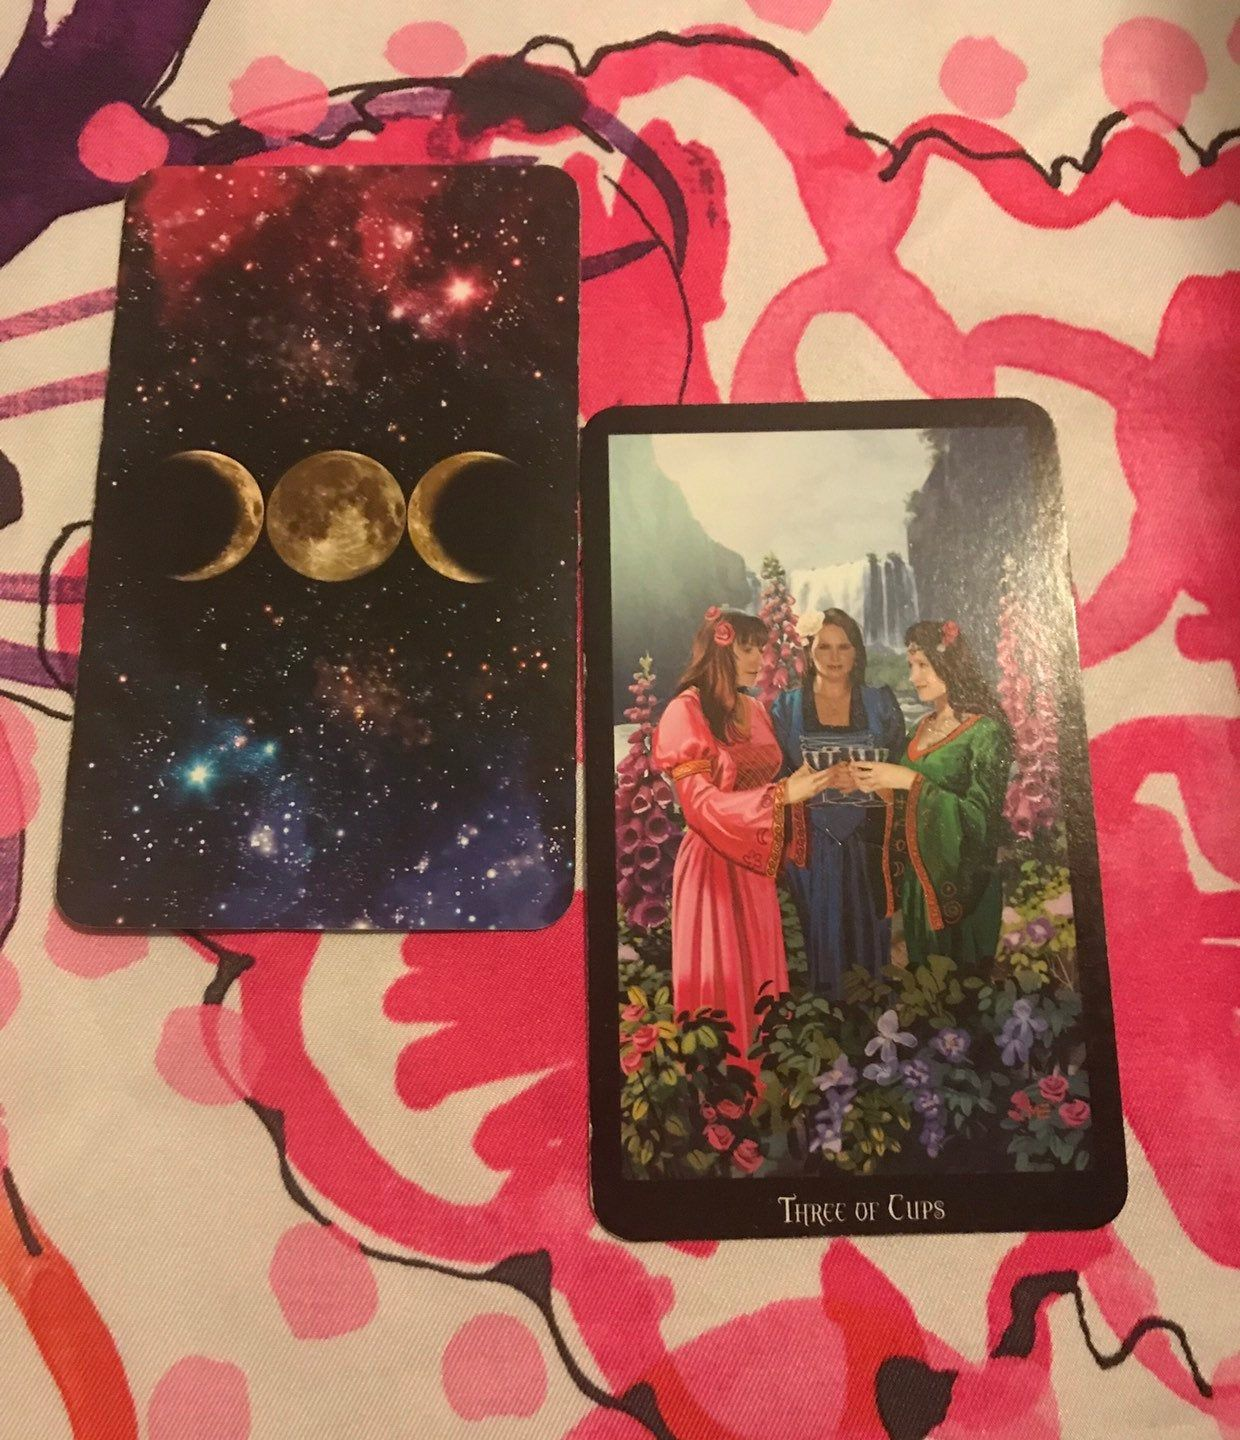 Single Card Tarot Or Oracle Reading (With Images)